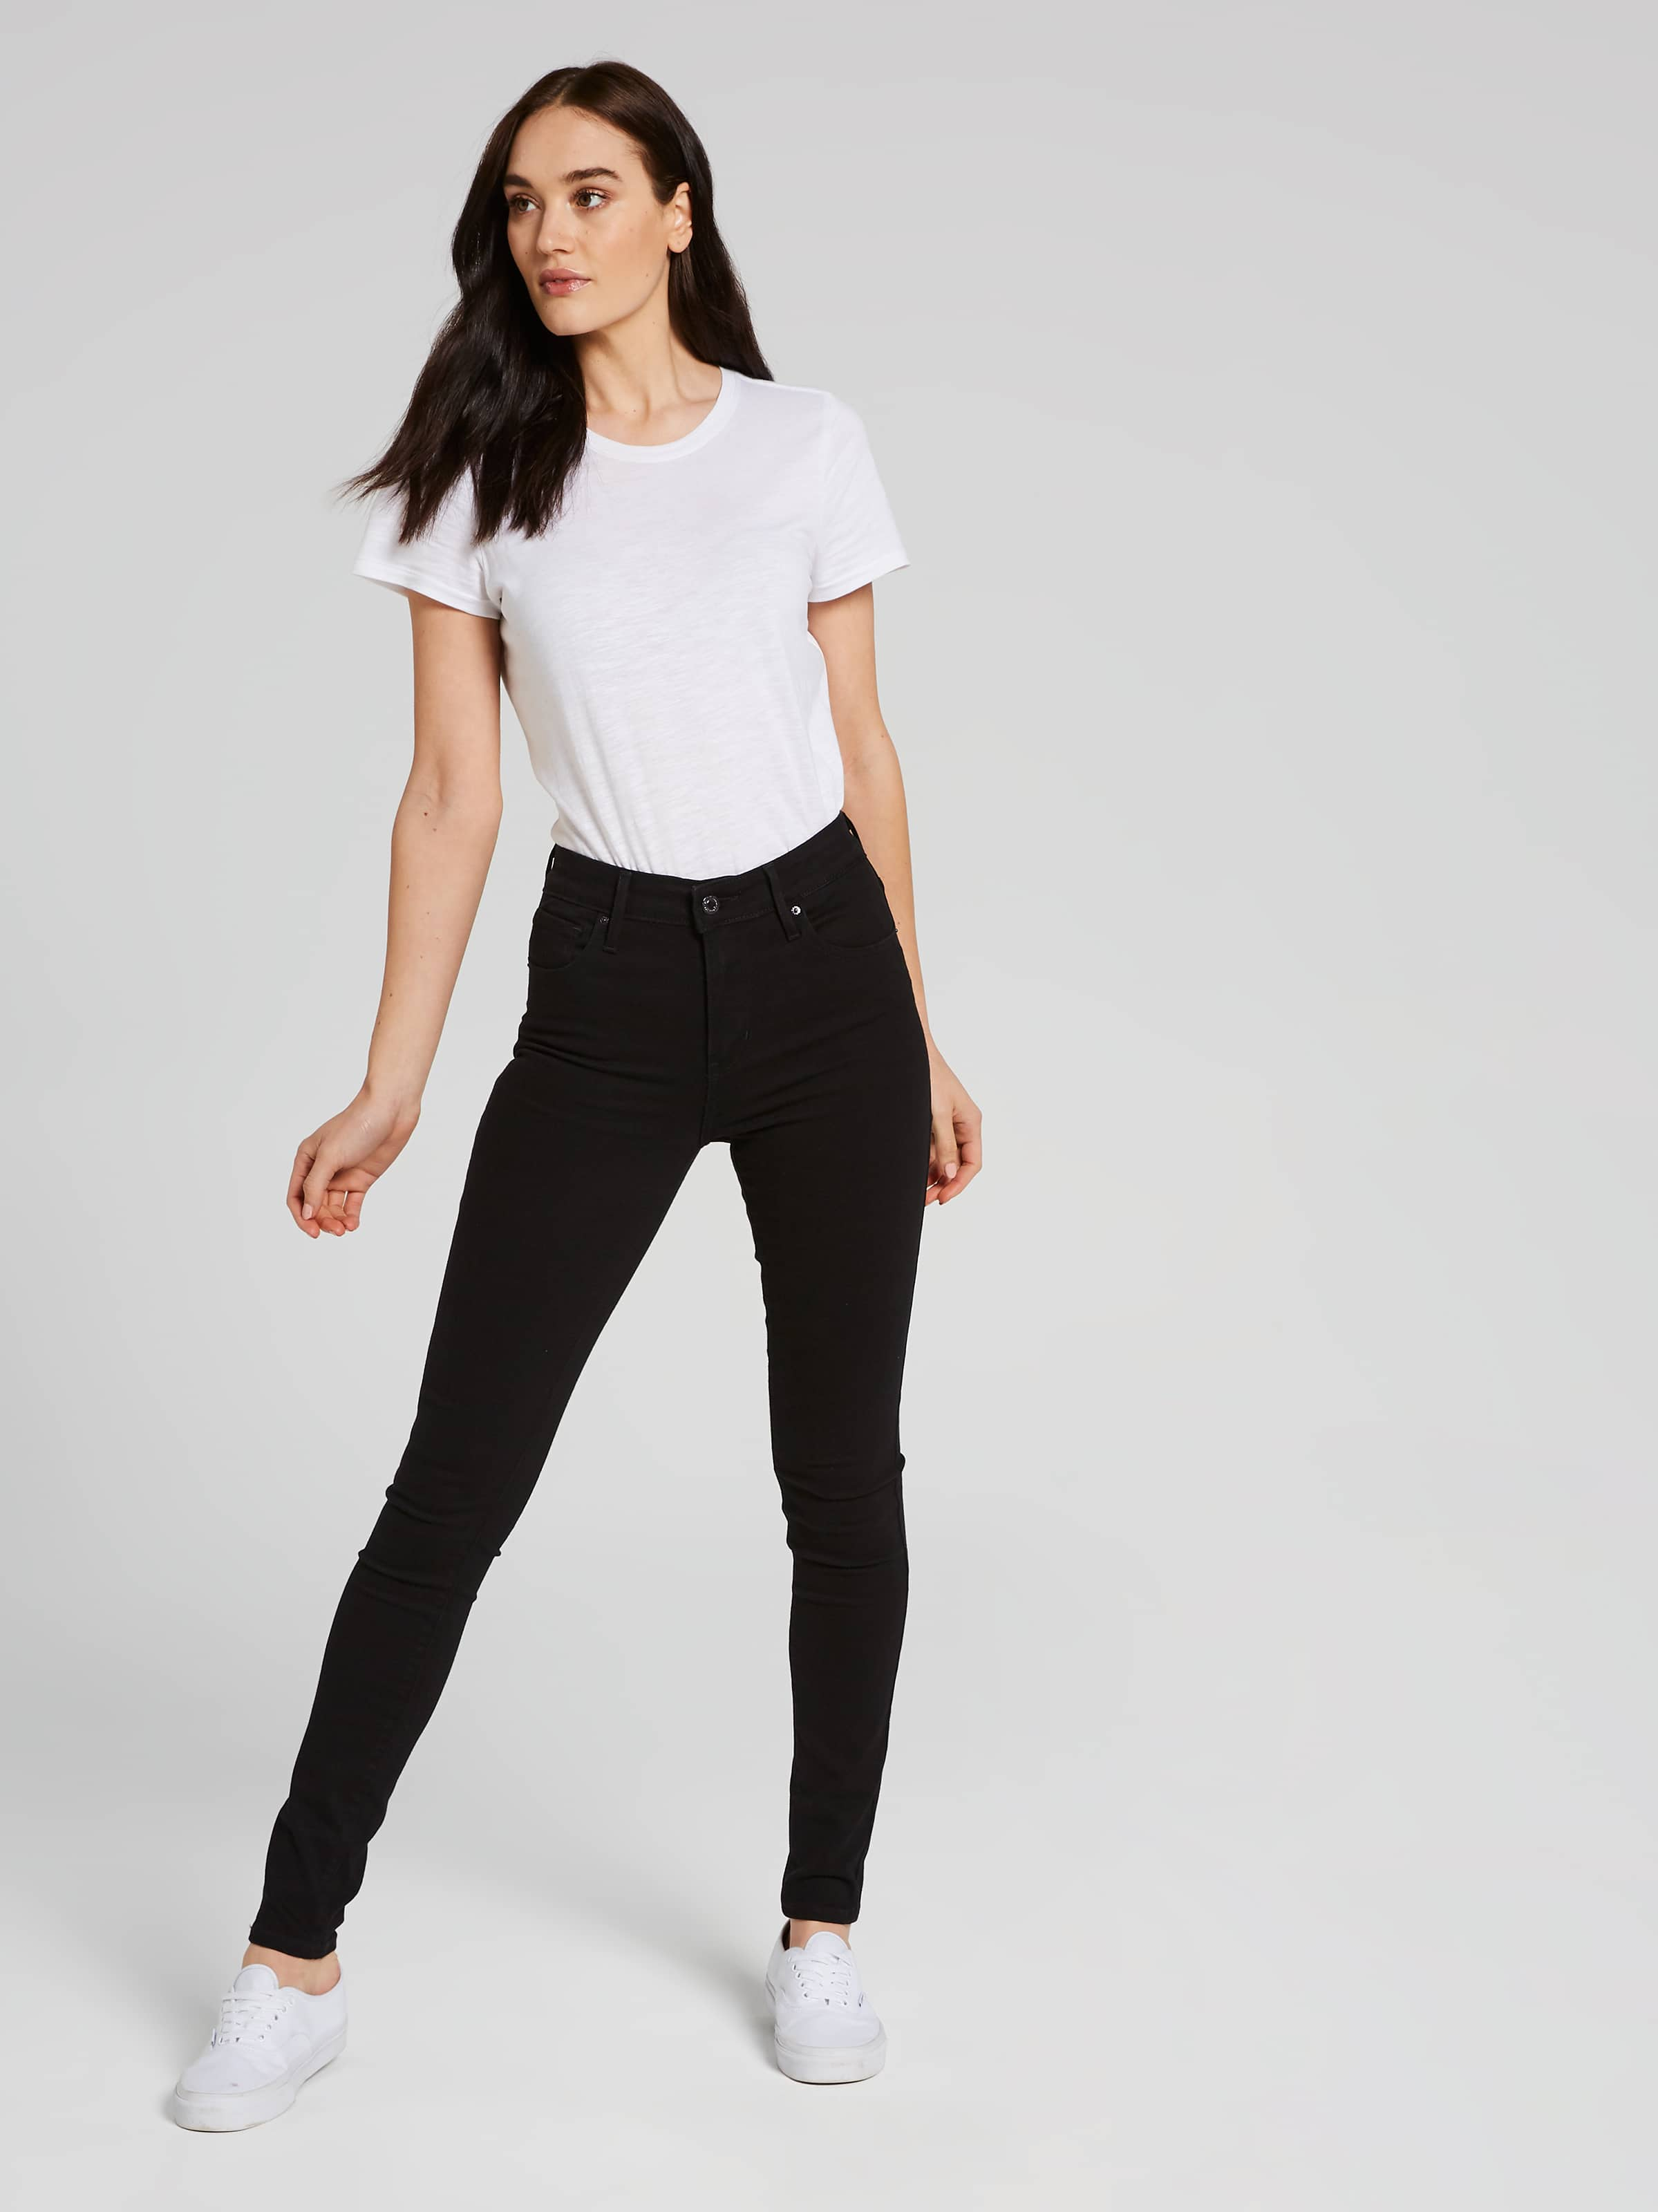 b1dc019443869 ... Image for Levi s 721 High Rise Skinny Jean In Black Sheep from Just  Jeans ...